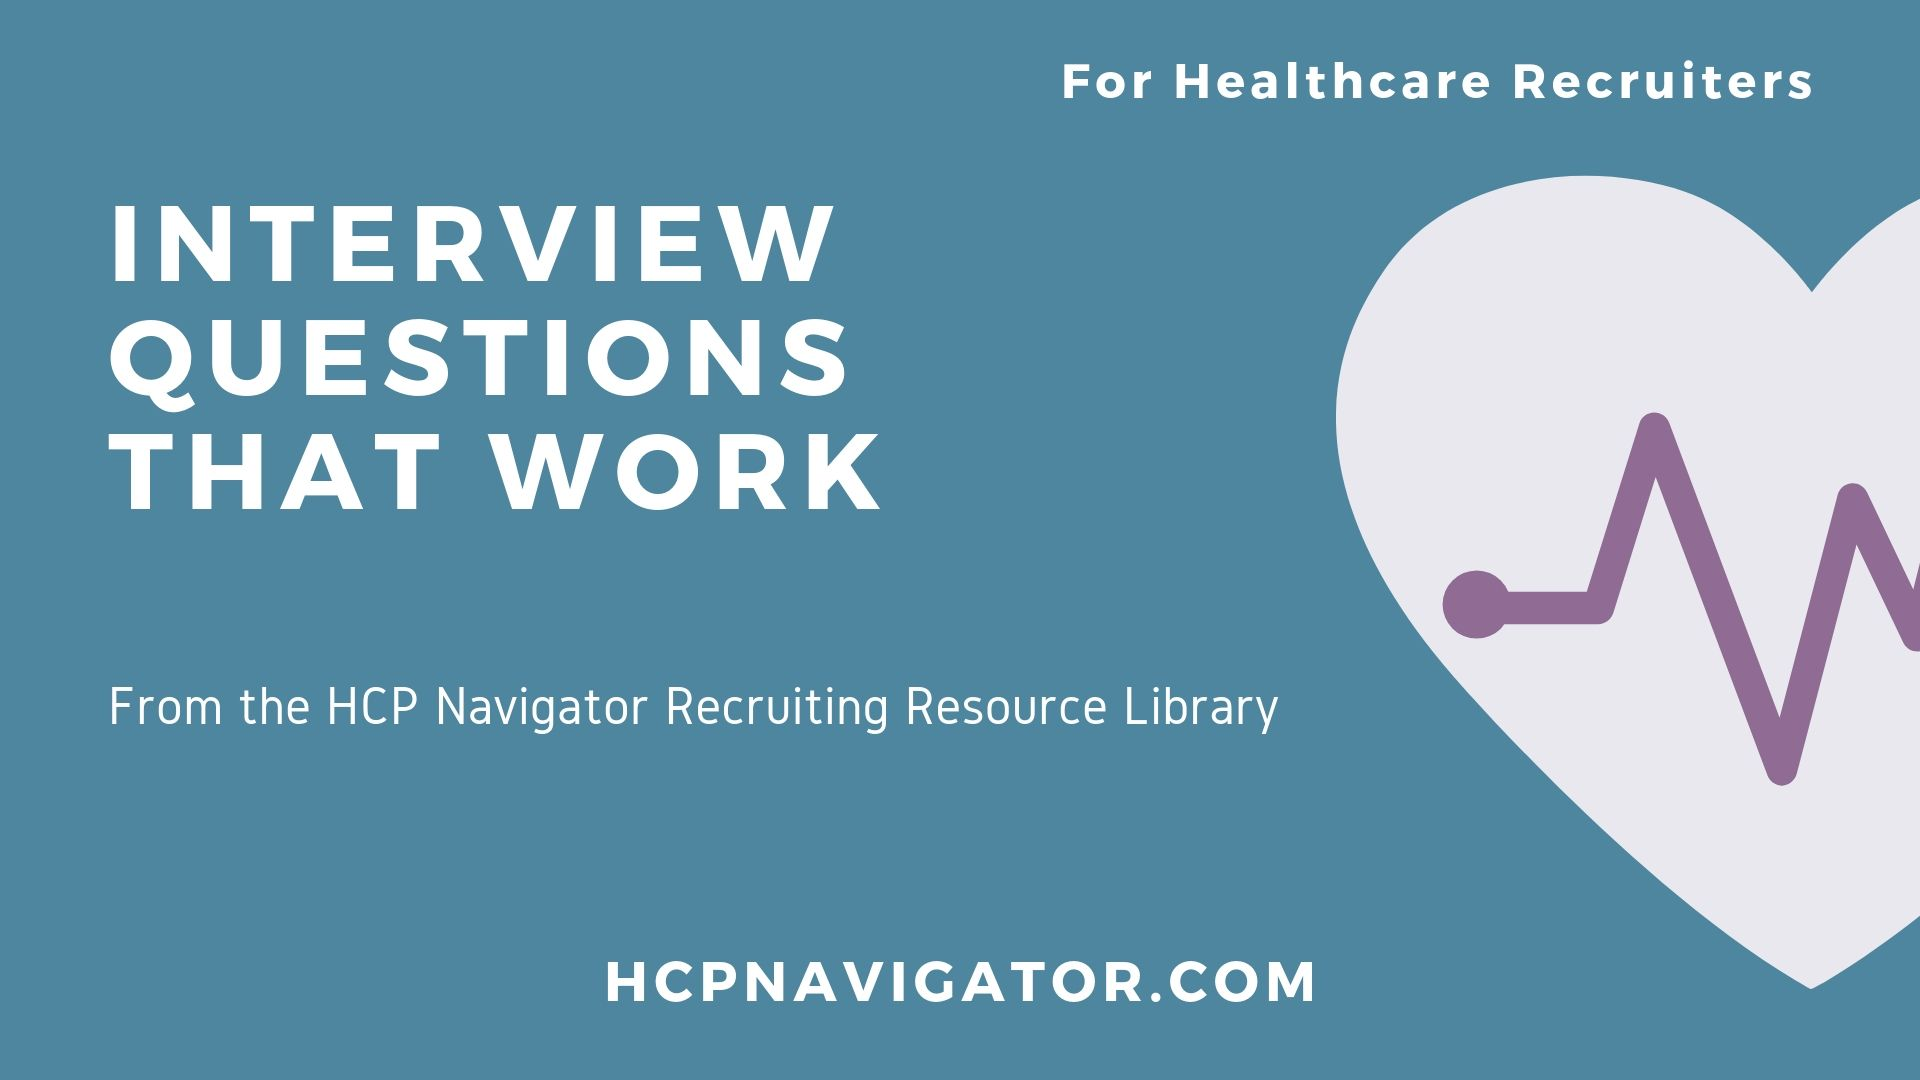 Learn The Three Revealing Question Types Every Healthcare Recruiter Should Consider When Interviewing Healthcare Candidates For Their Organization.